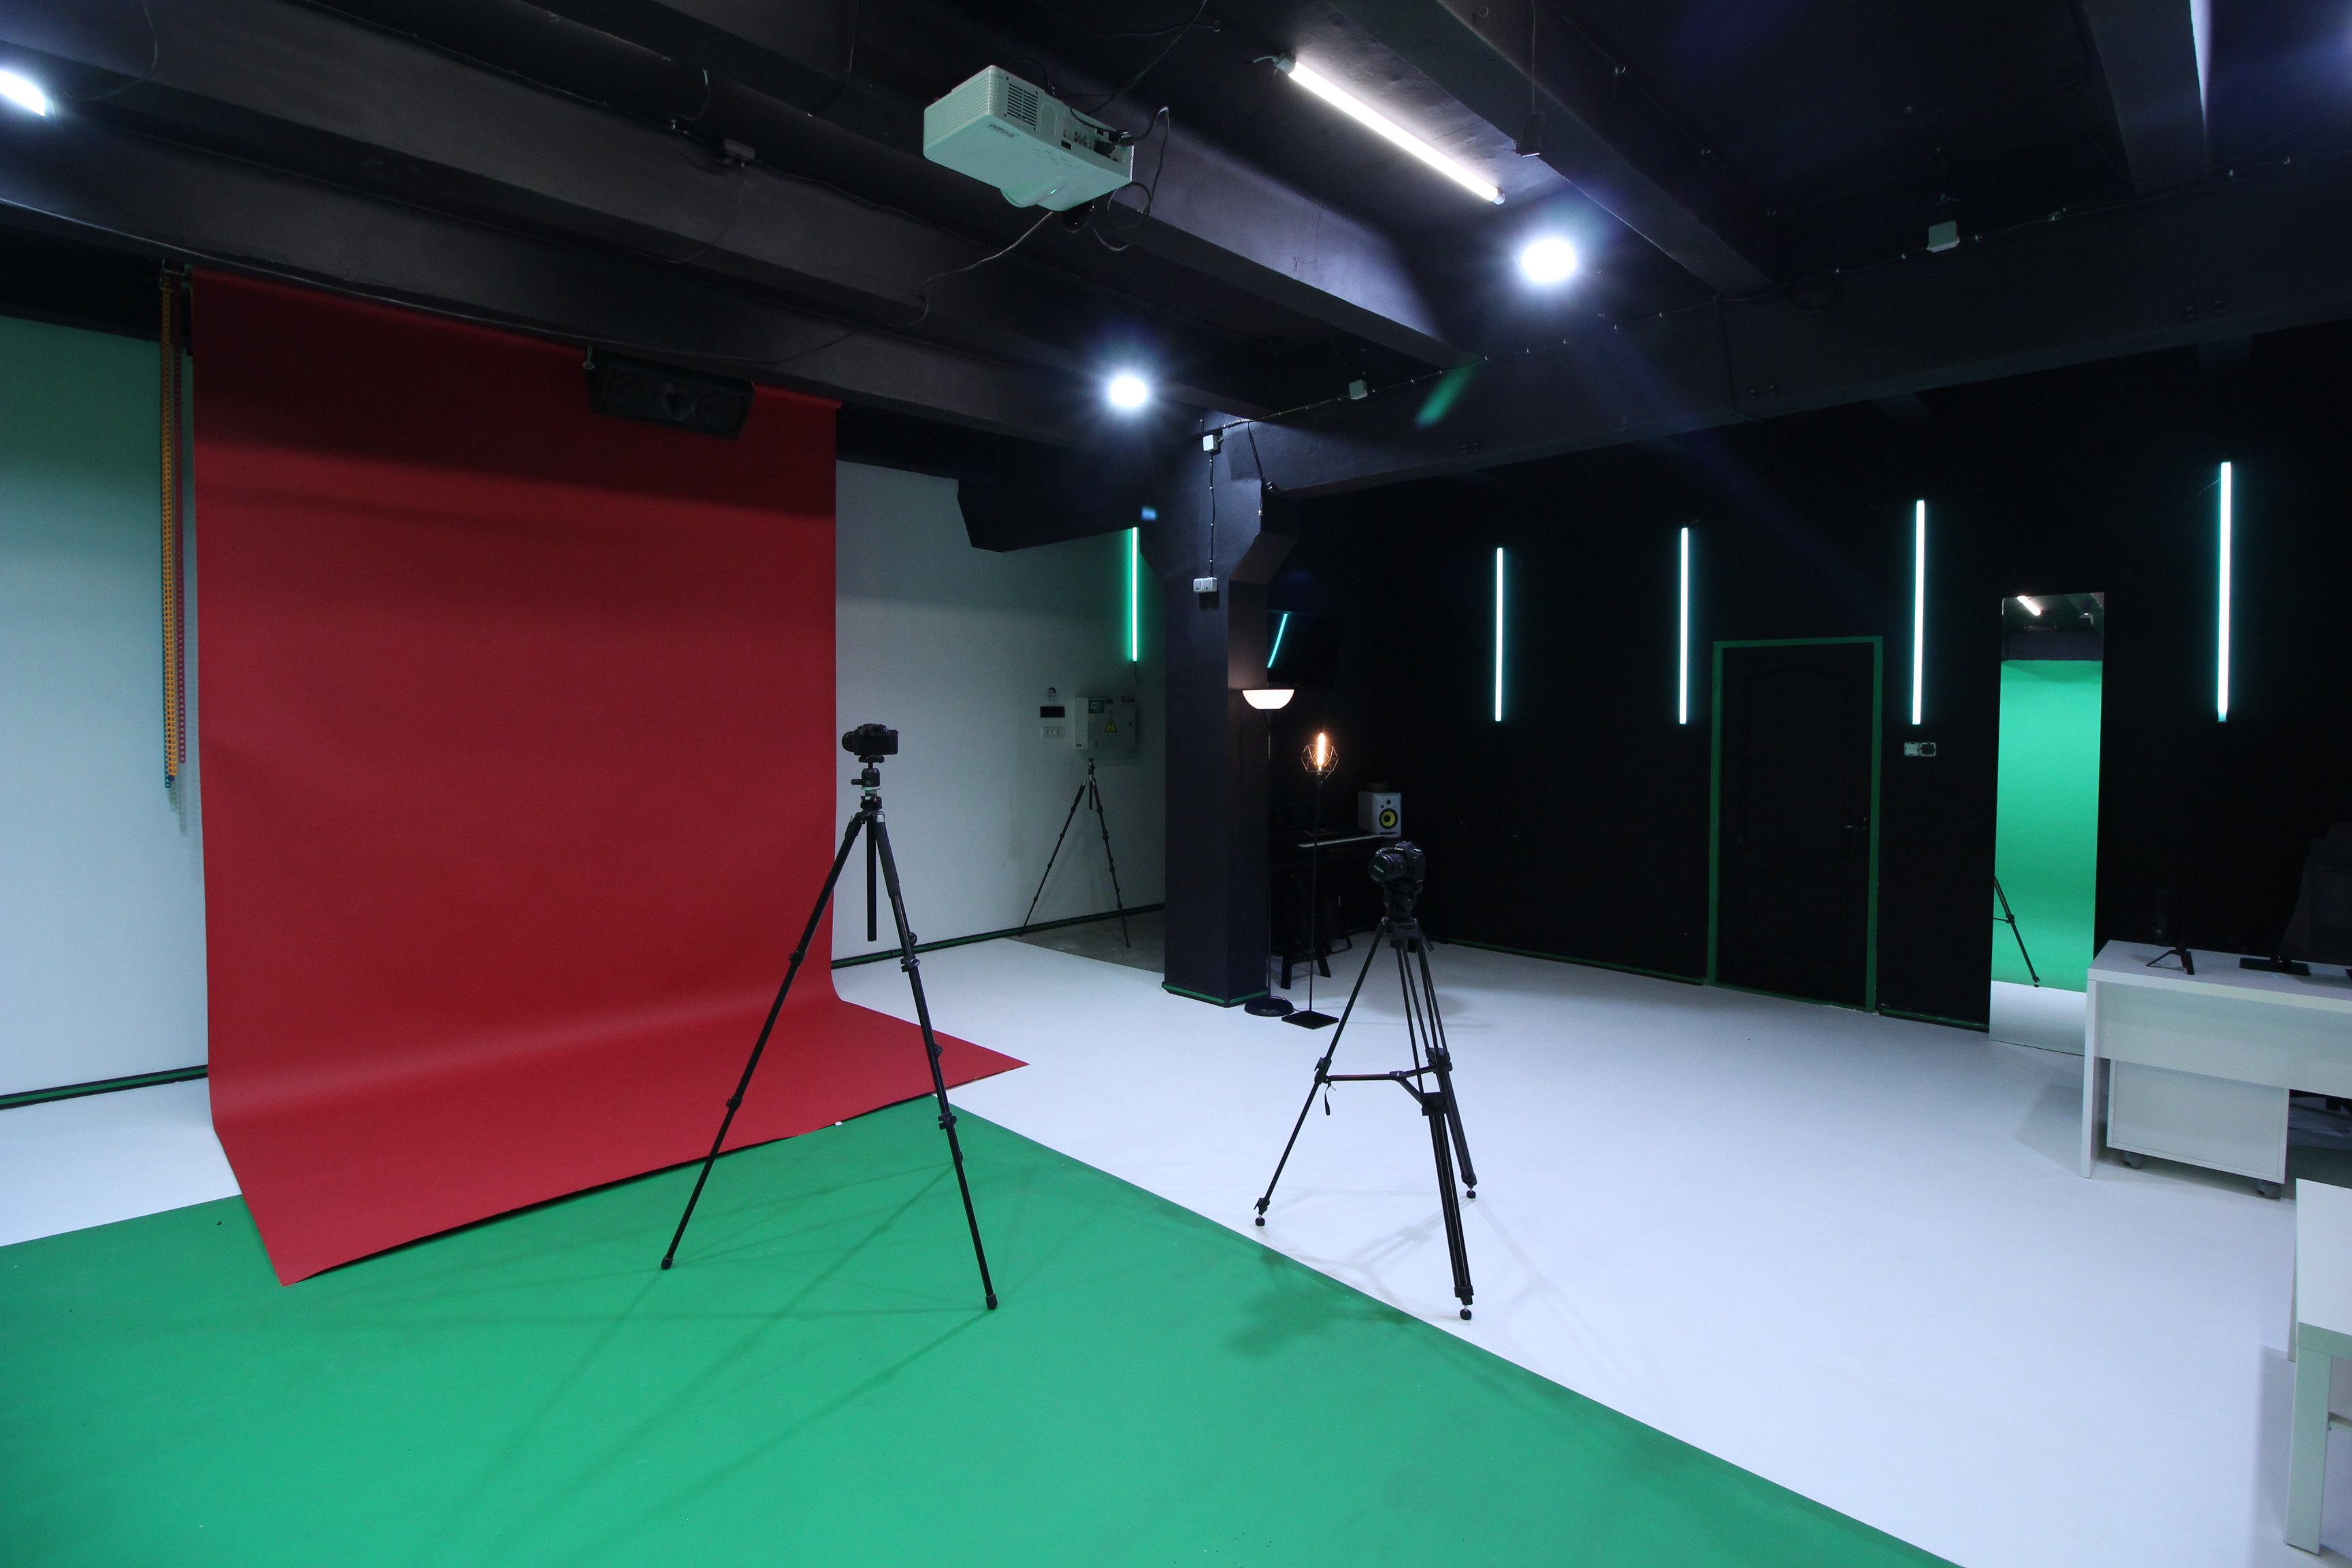 green screen studio, chromakey